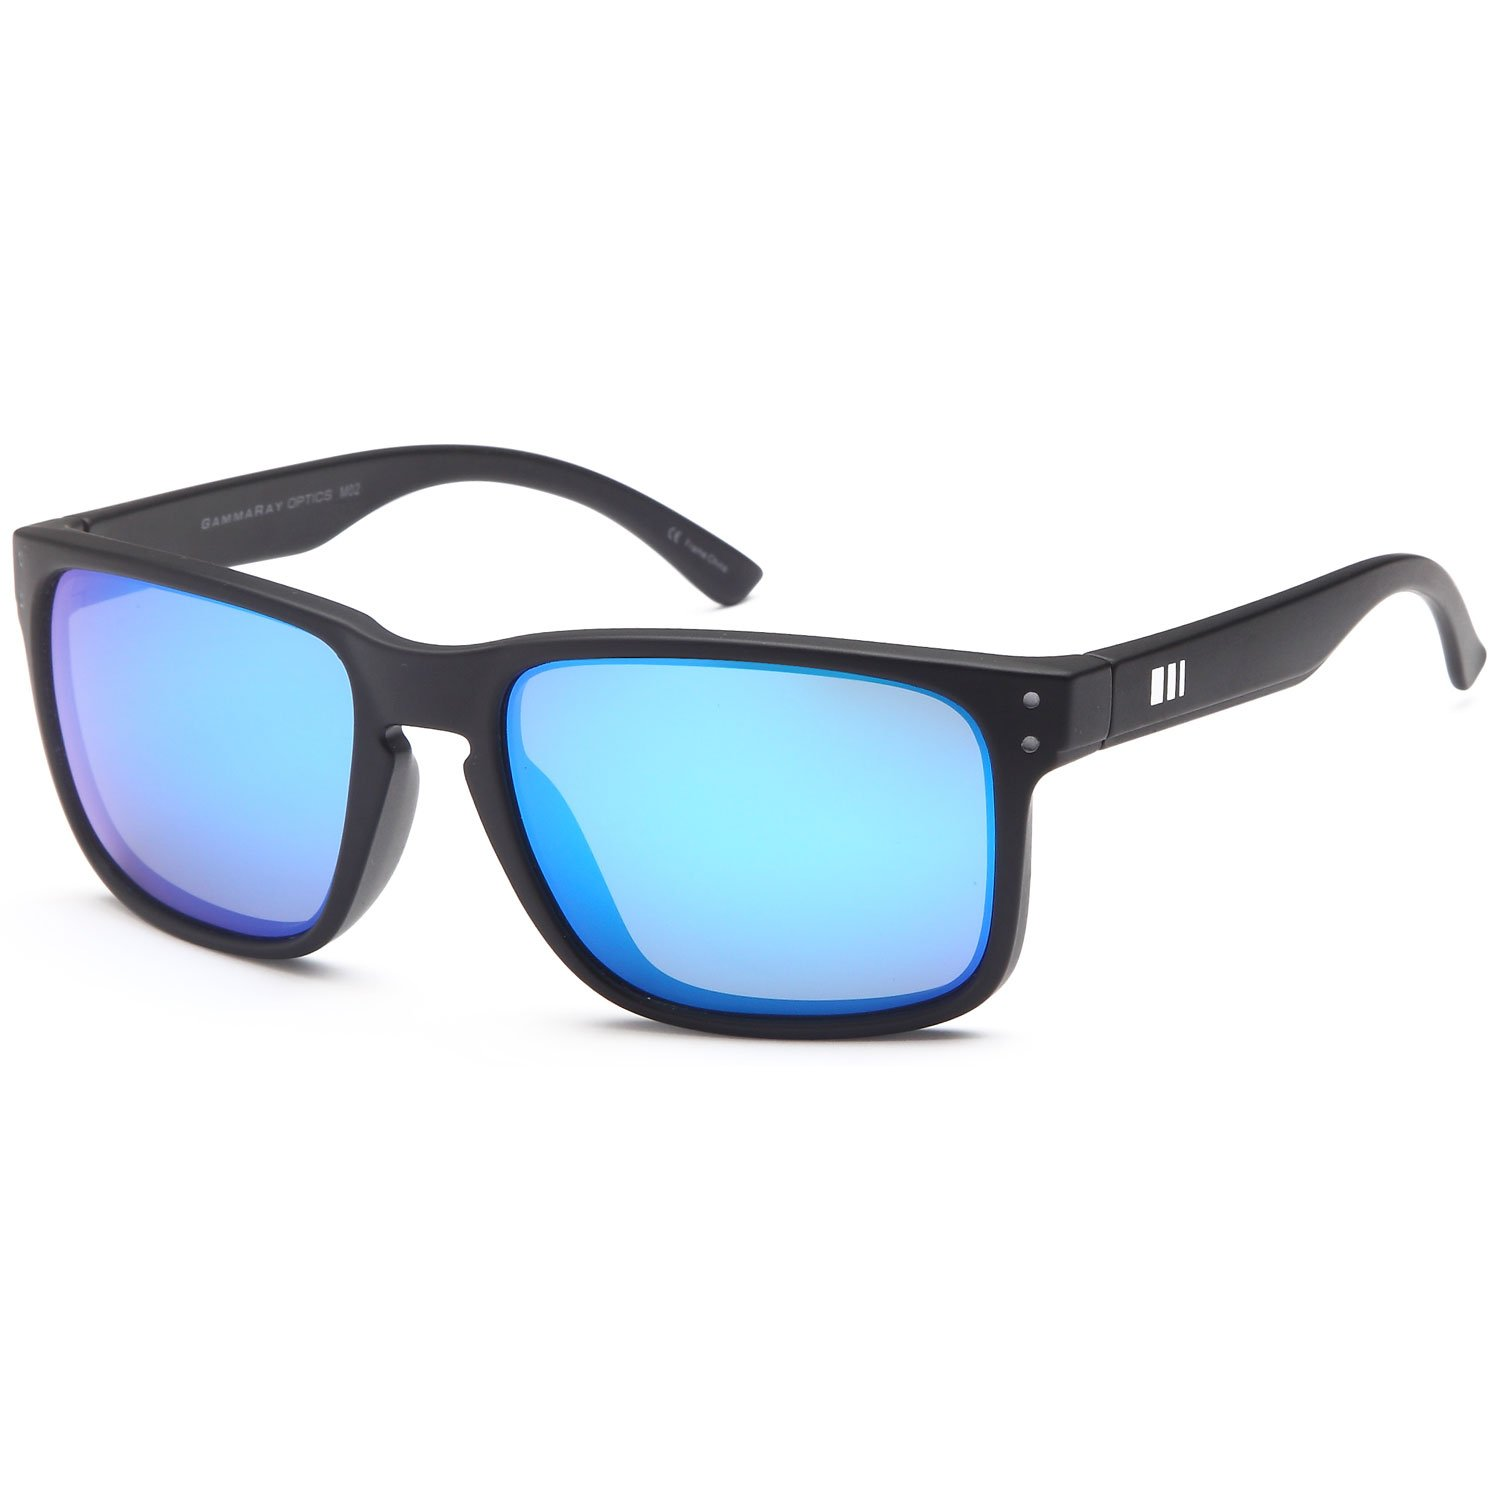 4951fb45d89 Amazon.com  Gamma RAY Polarized UV400 Classic Sunglasses with Shatterproof  Nylon Frame - Black Frame Blue Mirror Lens  Sports   Outdoors